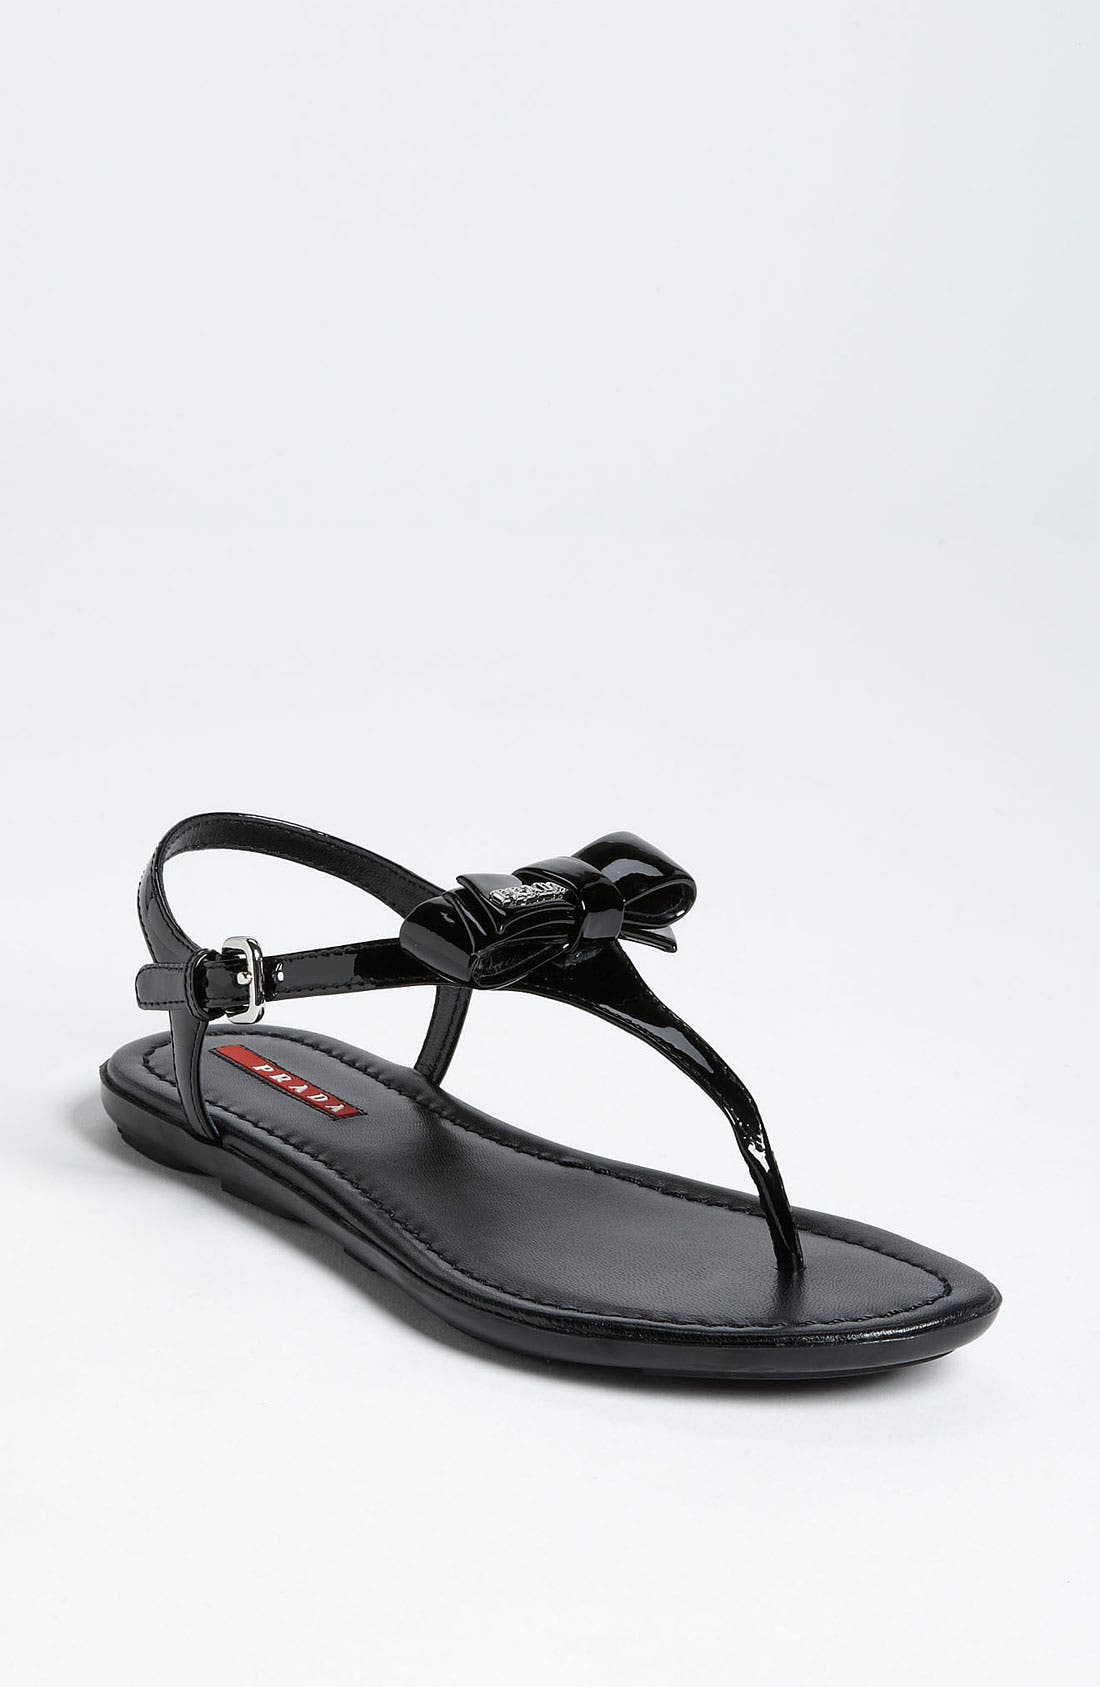 Alternate Image 1 Selected - Prada Thong Sandal